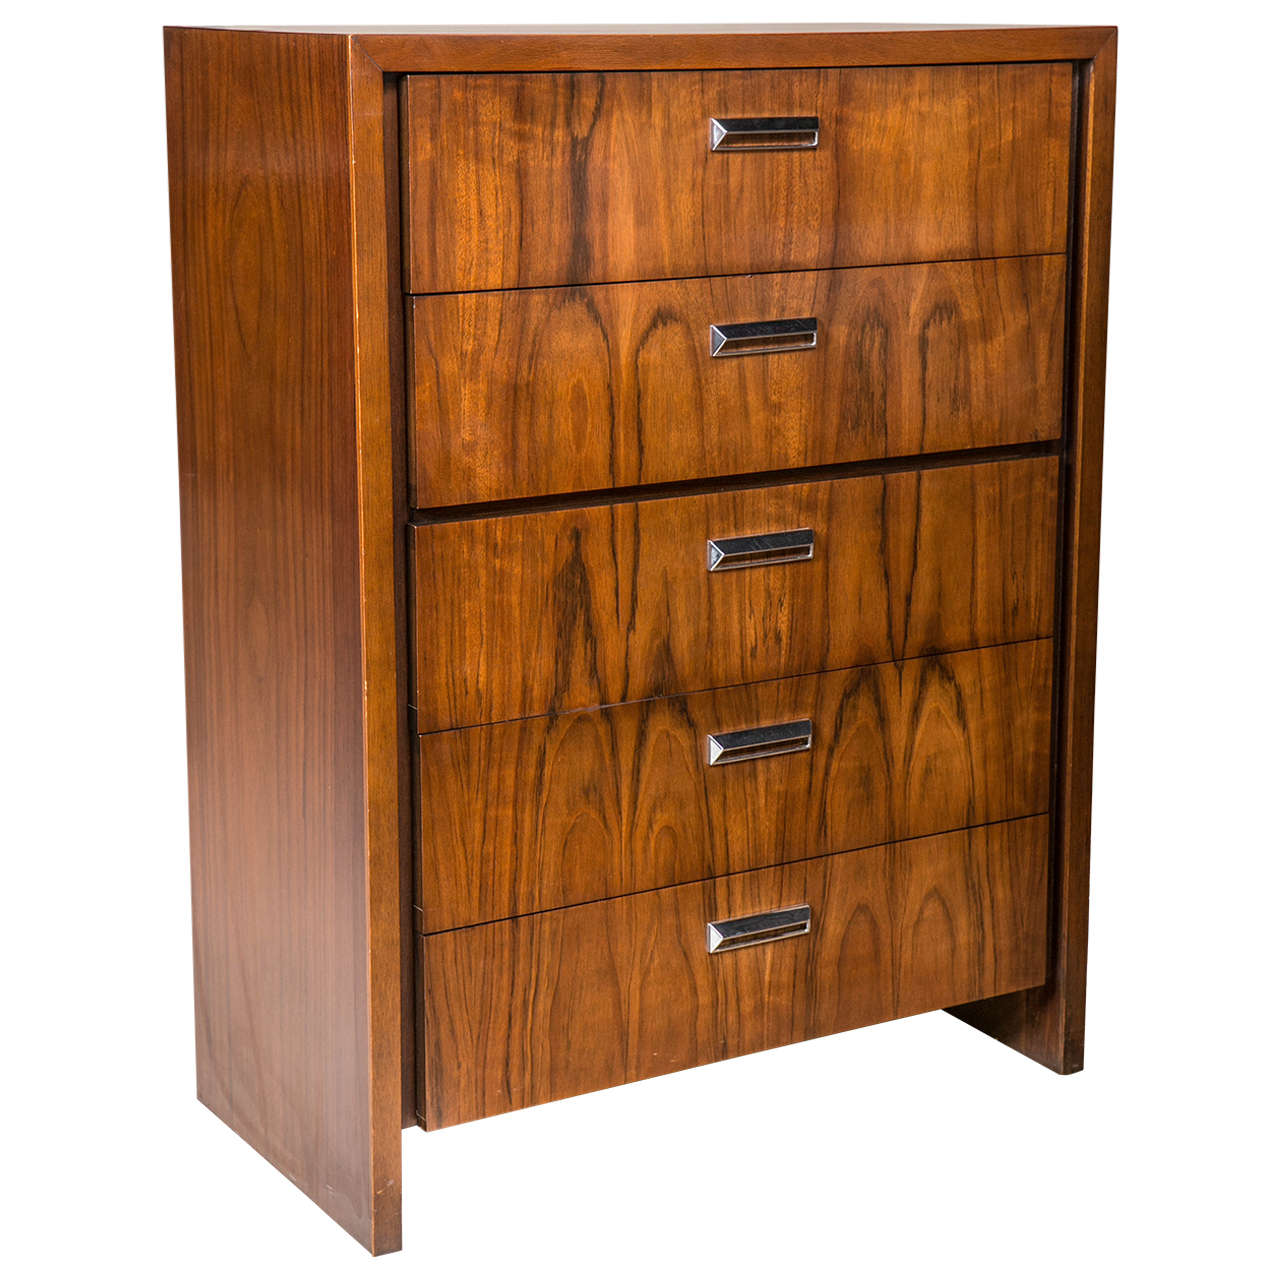 Chest of Drawers or Highboy Dresser by Lane